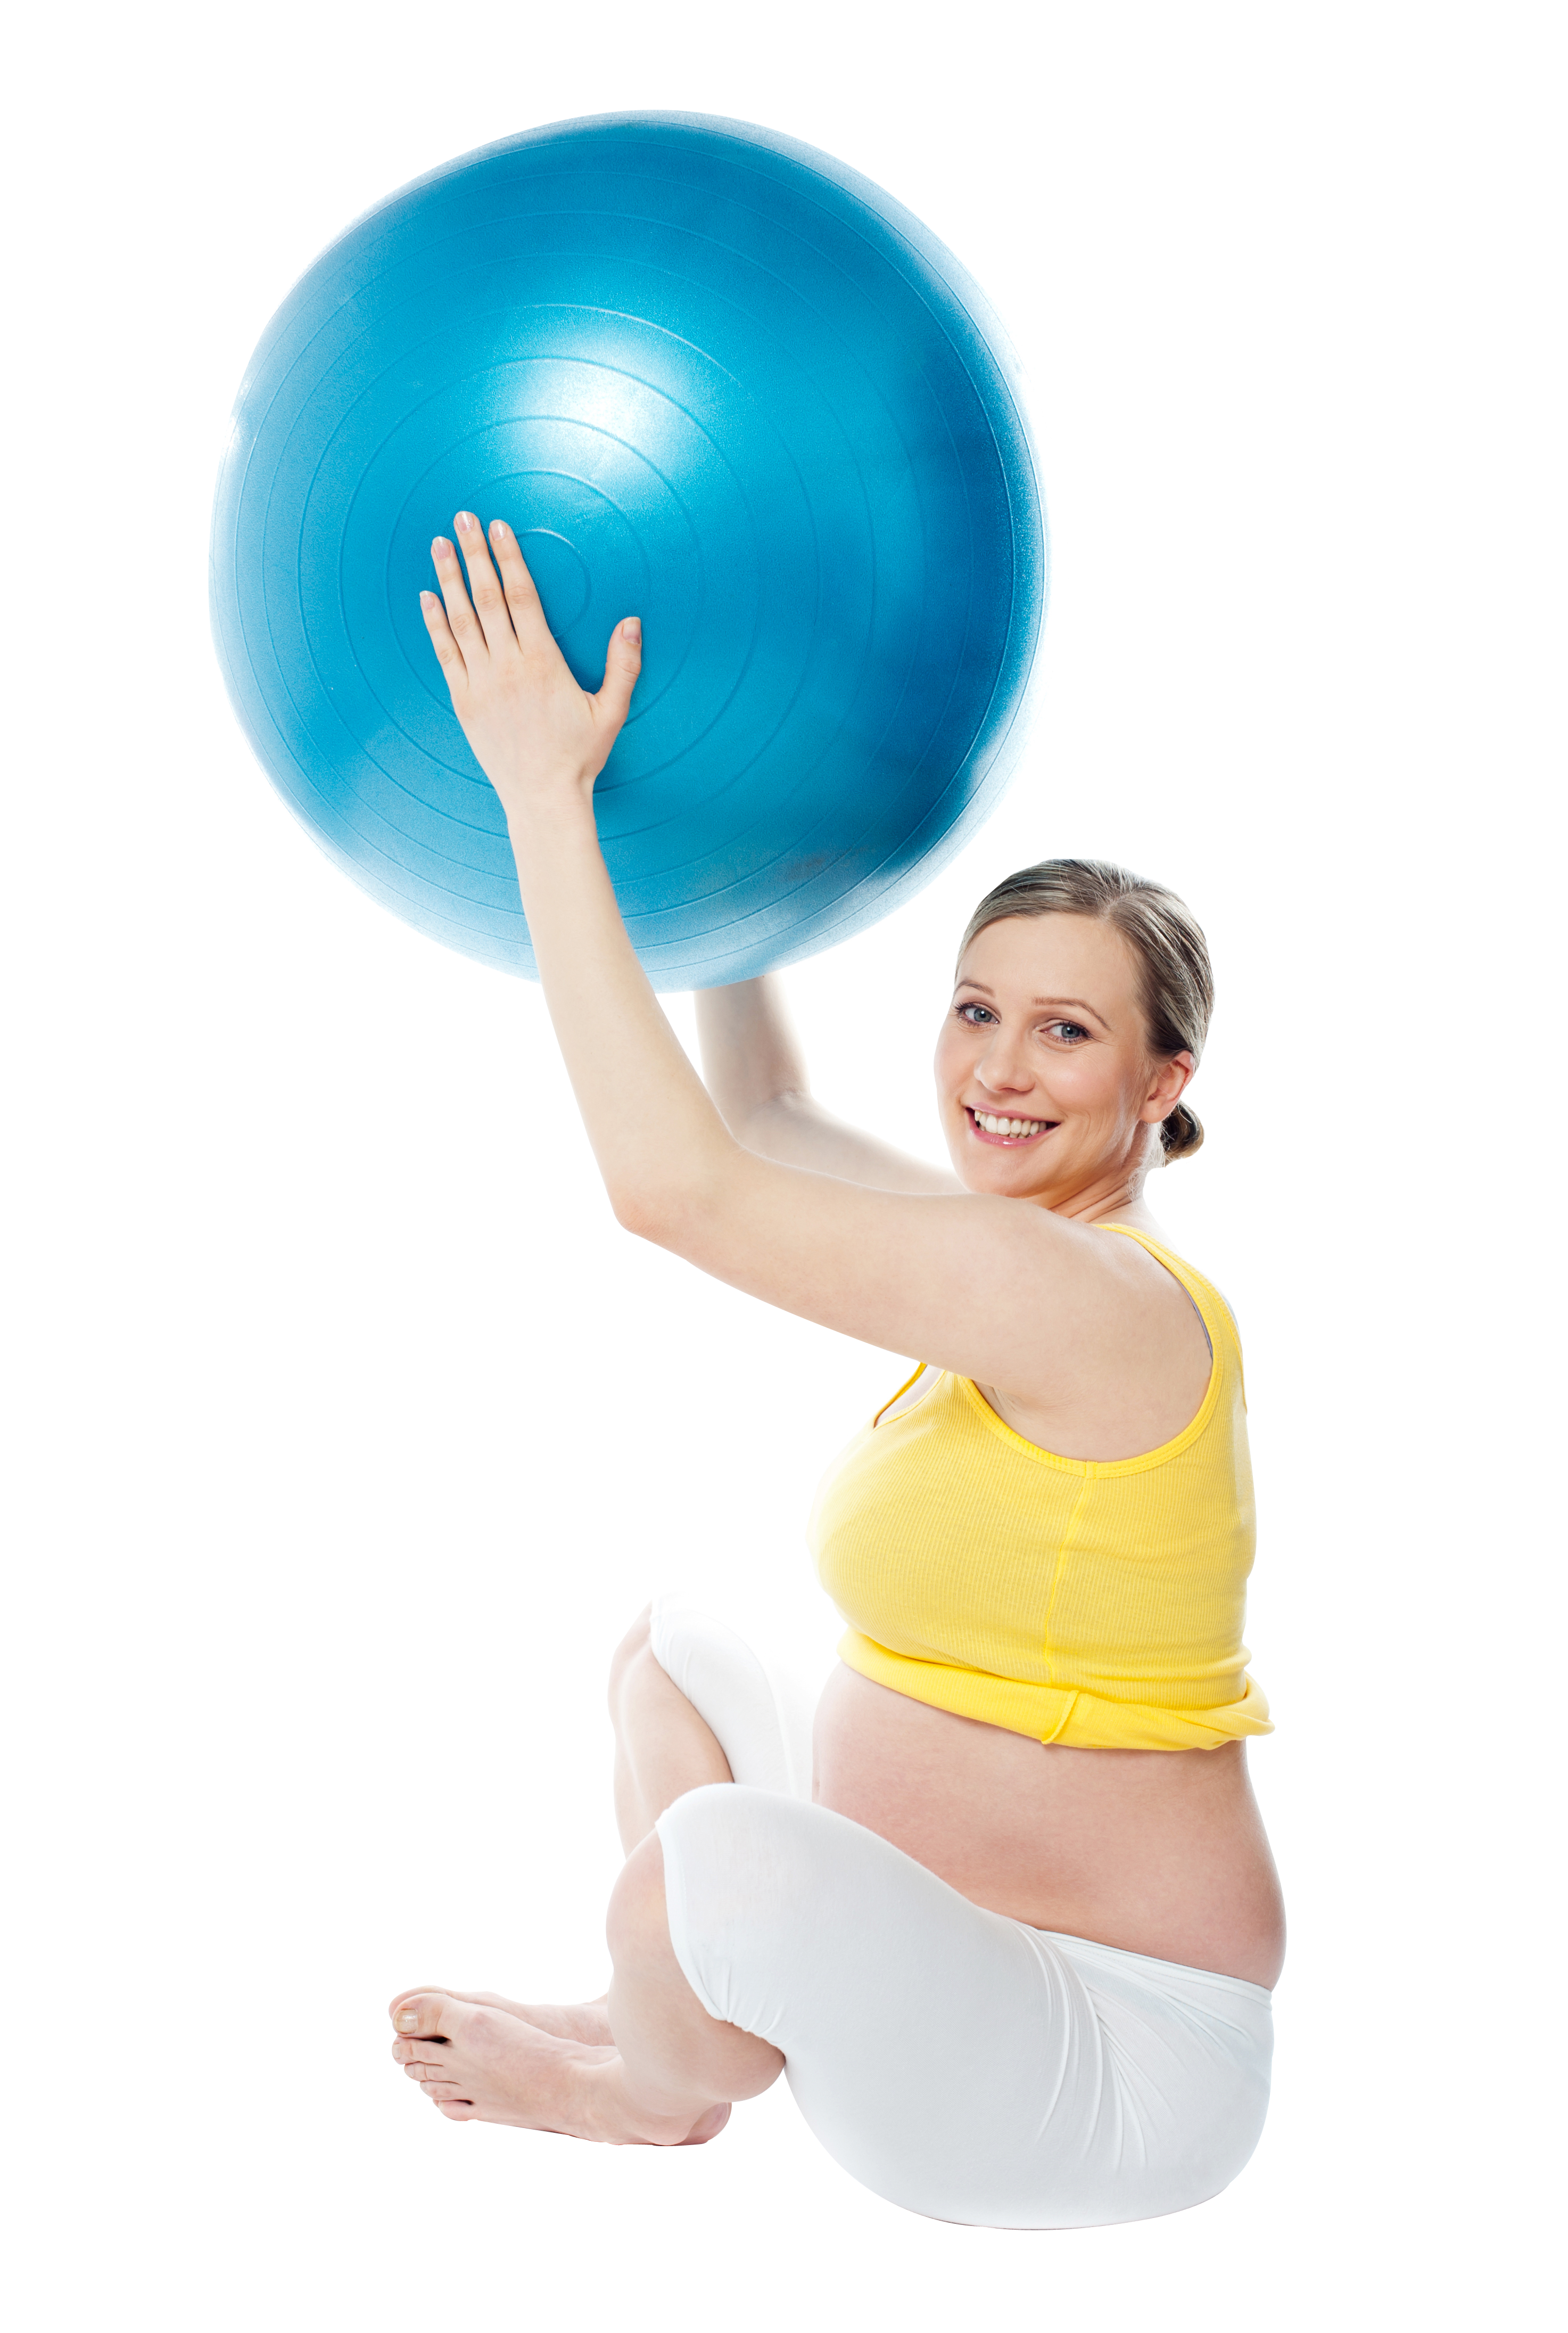 Pregnant Woman Exercise PNG Image